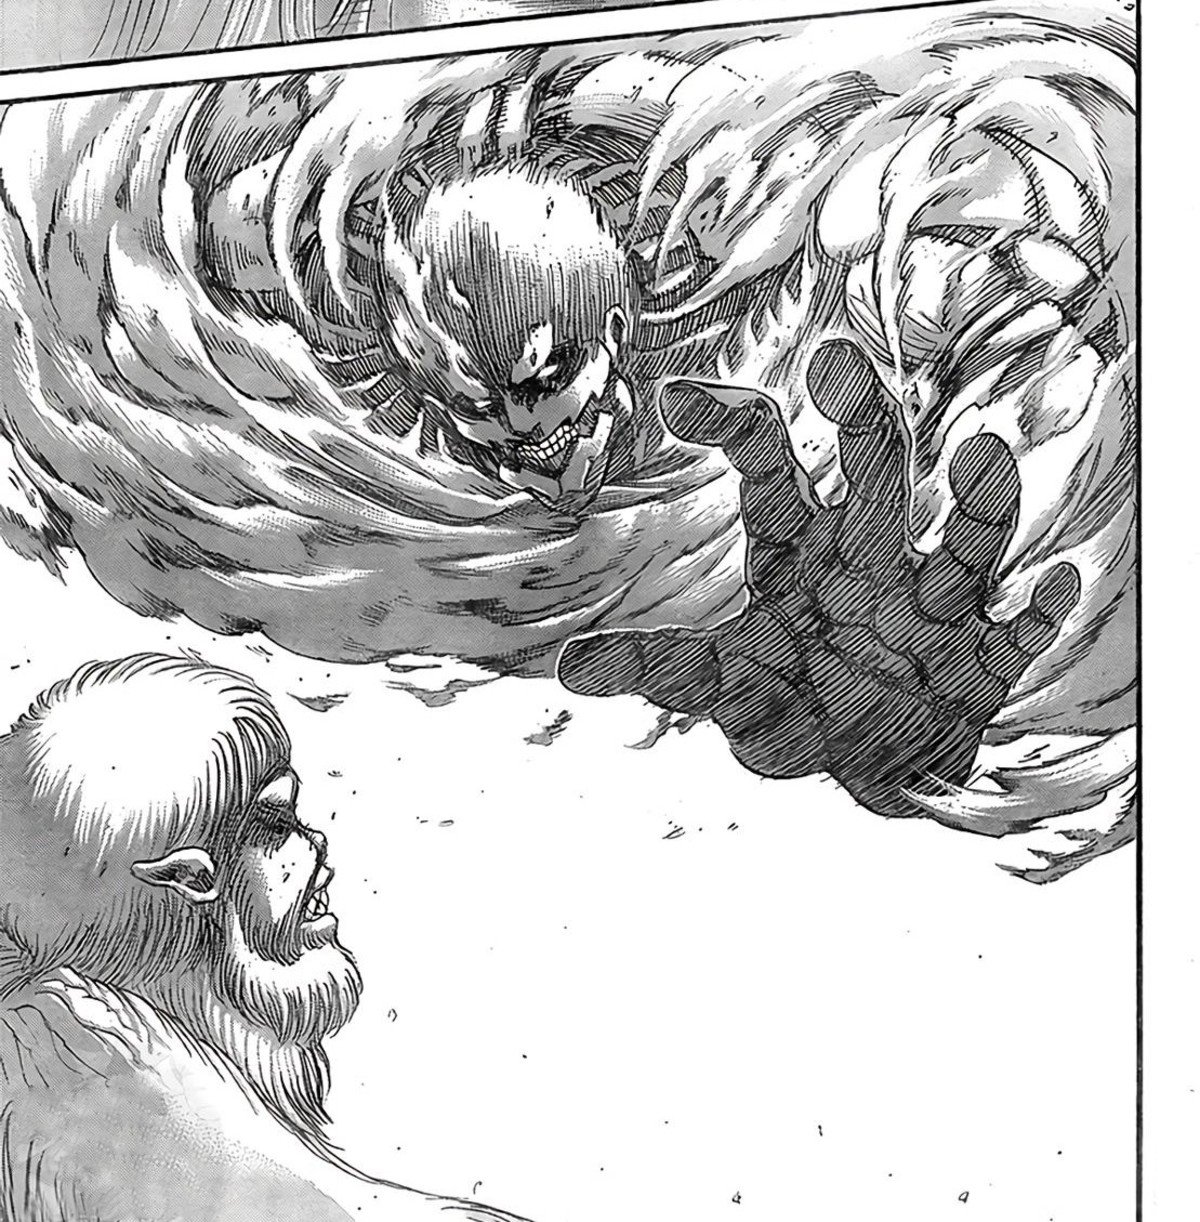 It's Too Late to Apologize – Shingeki no Kyojin Chapter 134 Review